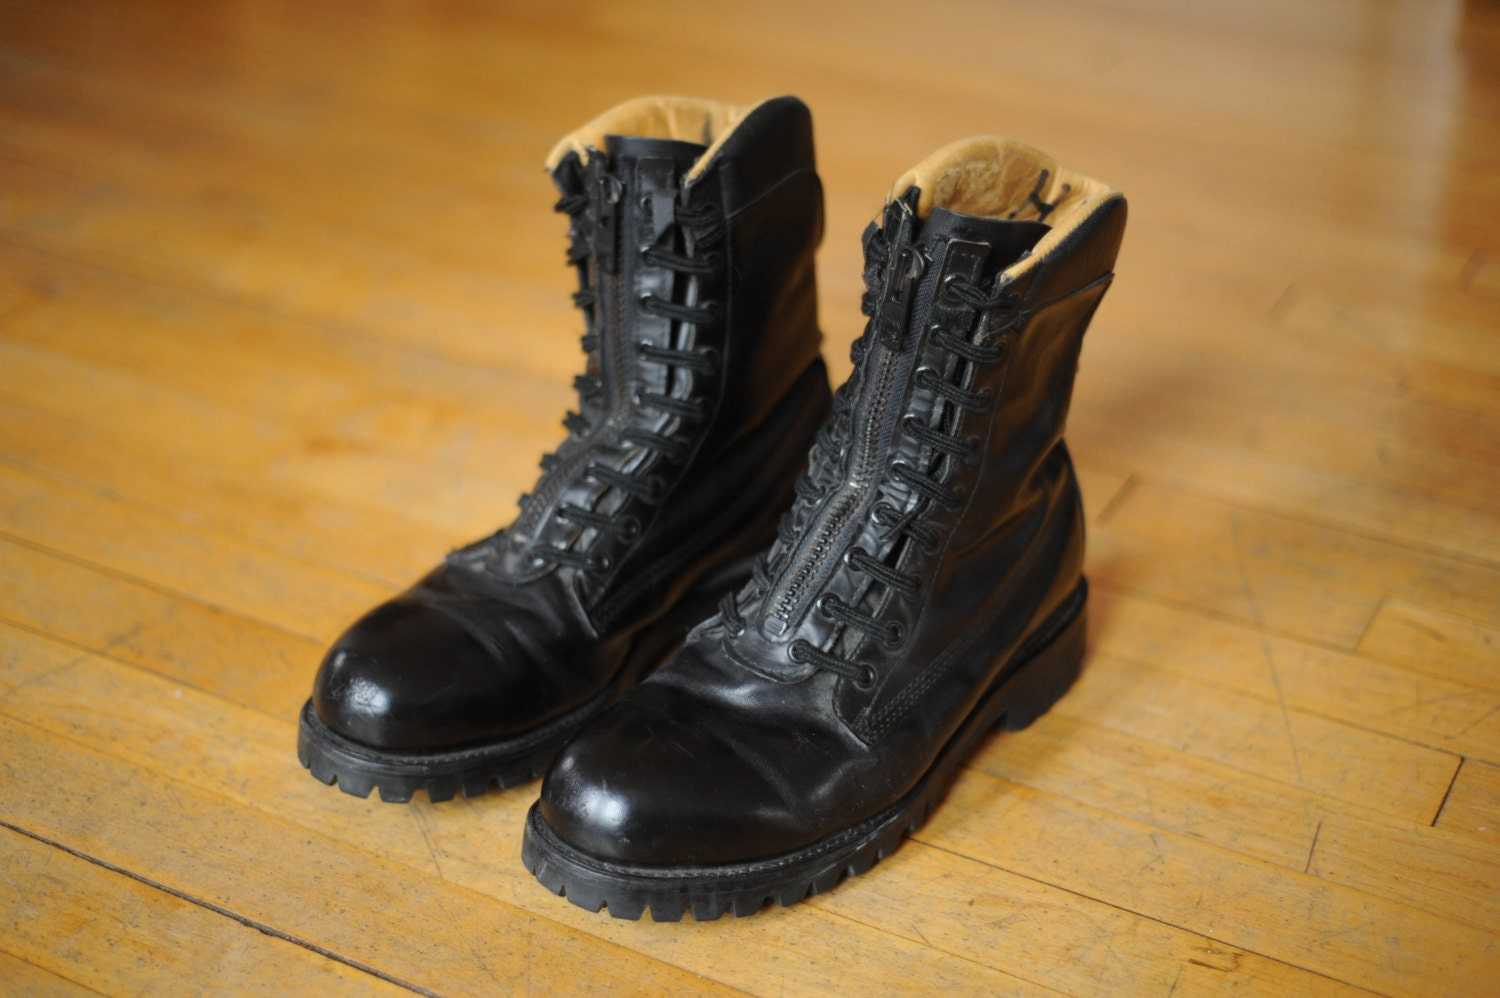 Vintage Chippewa Black Leather Steel Toe Combat Boots mens 10